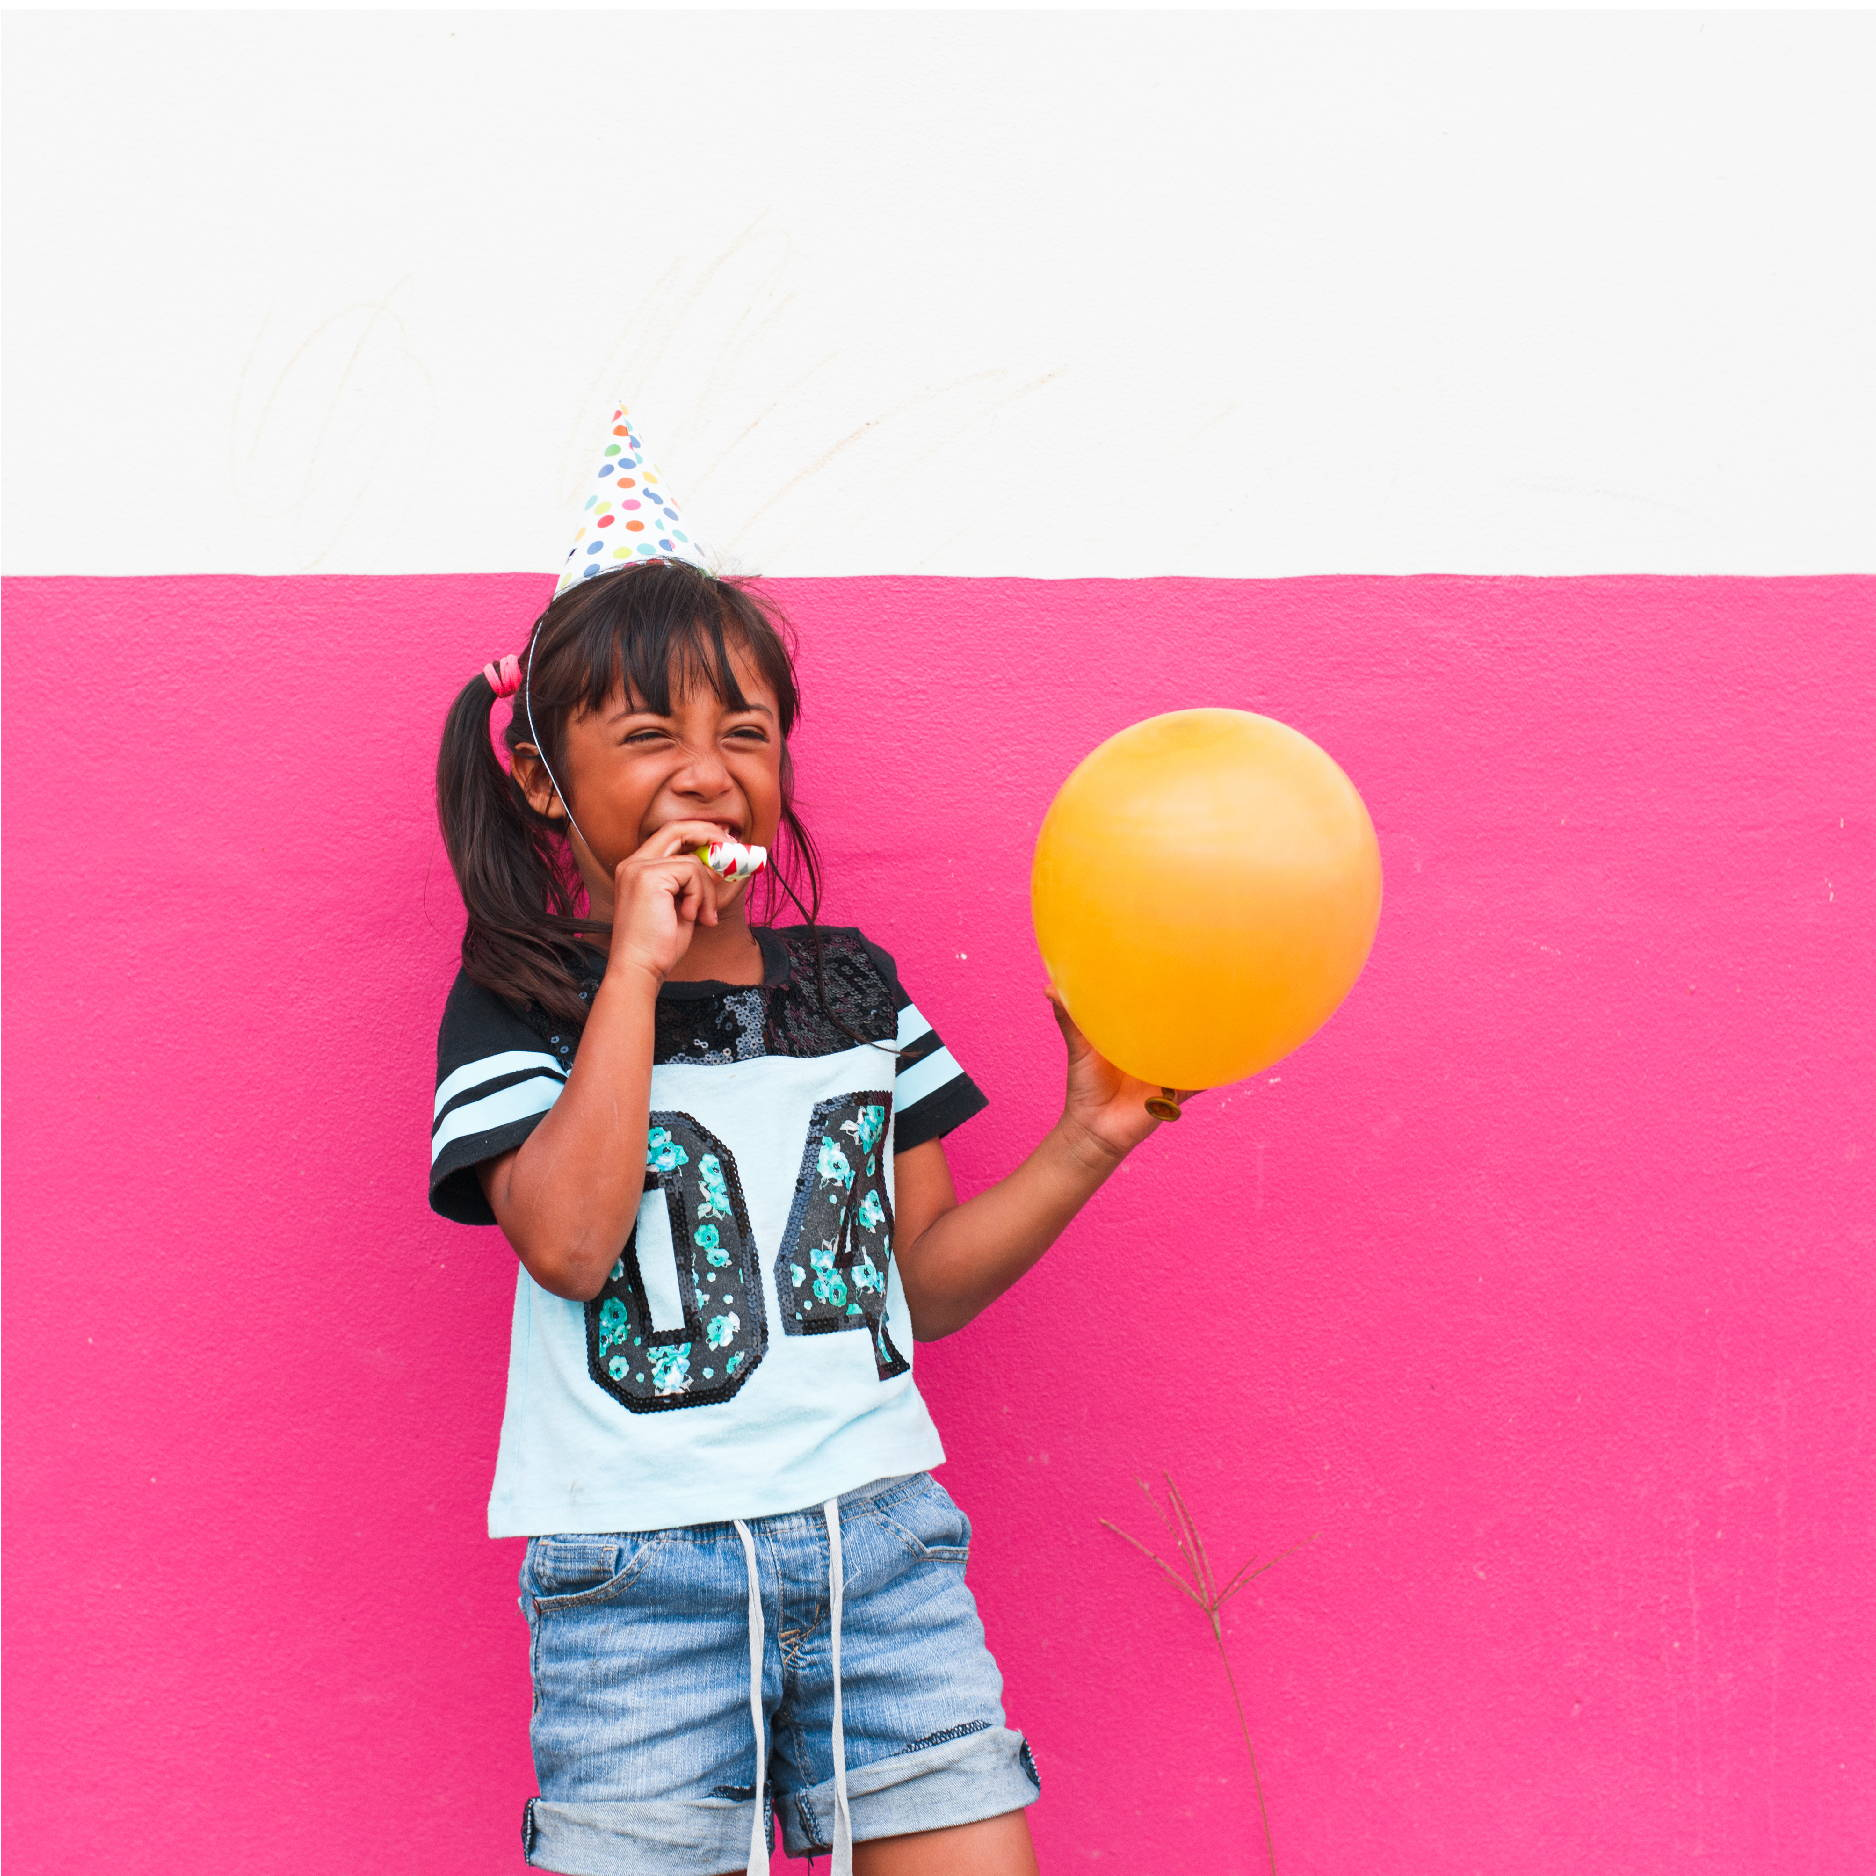 A young Honduran girl standing in front of a pink wall wears a part hat while holding a balloon and laughing.